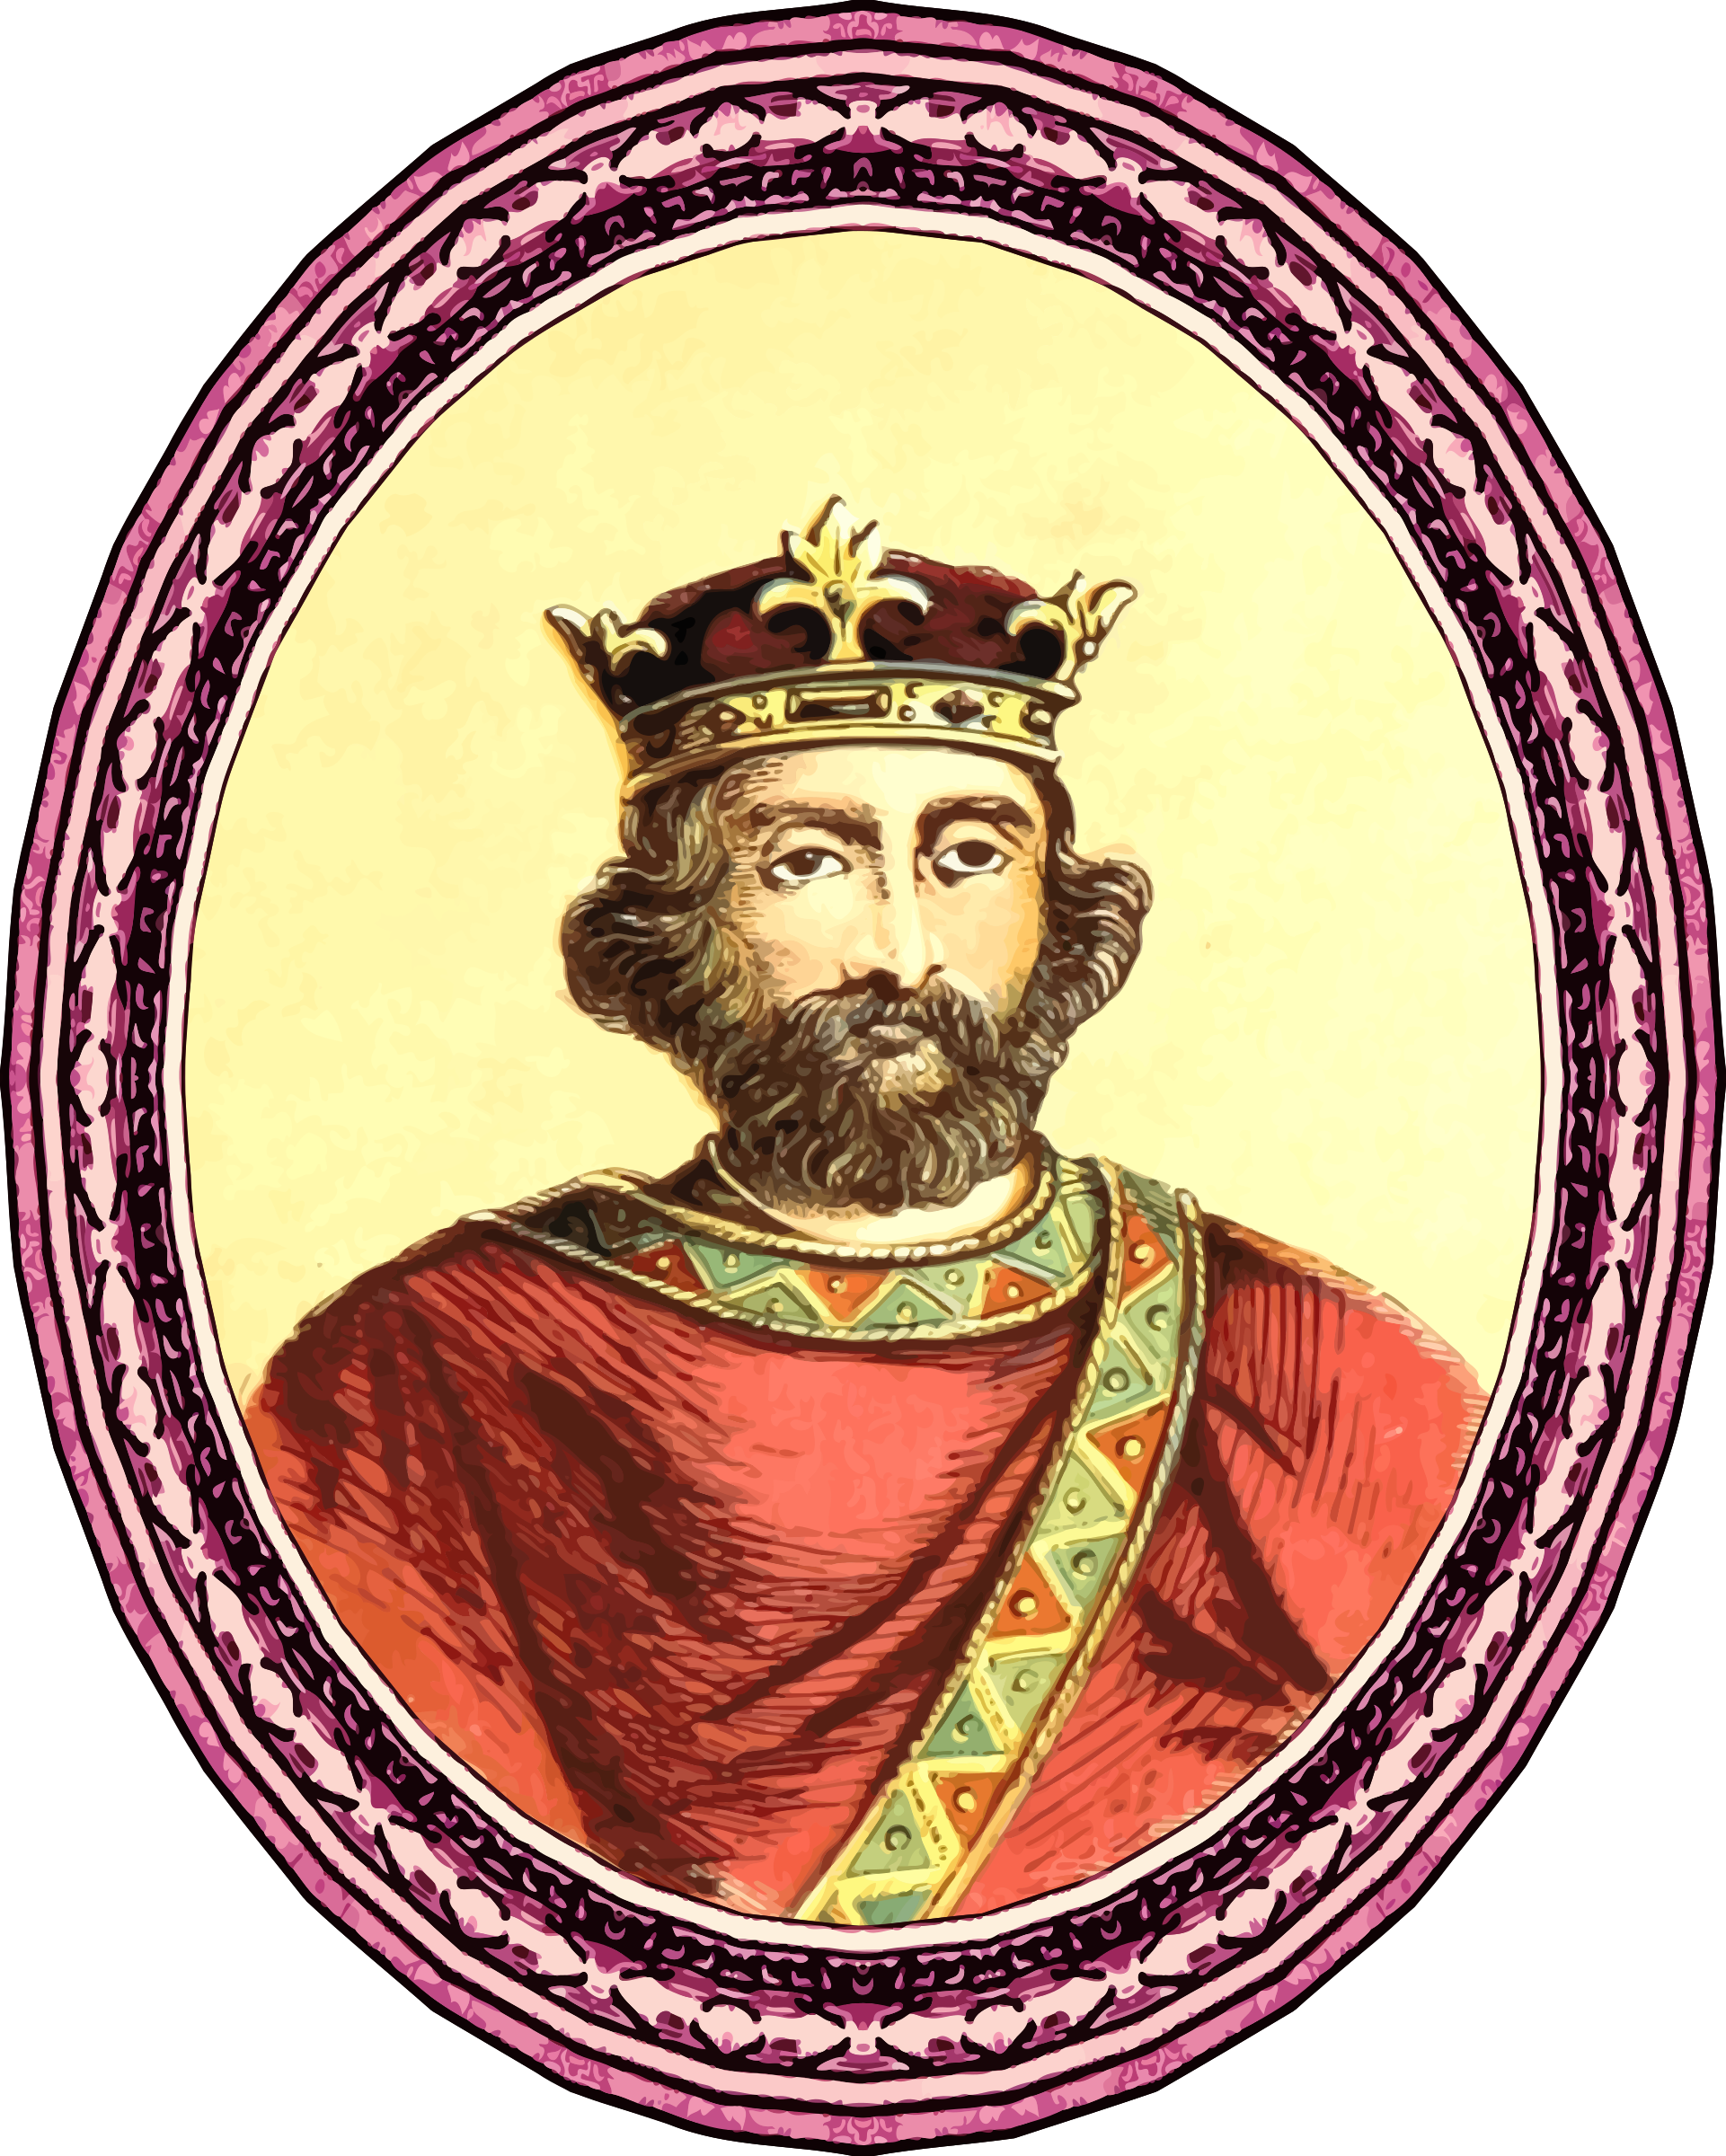 King Henry II (framed) by Firkin